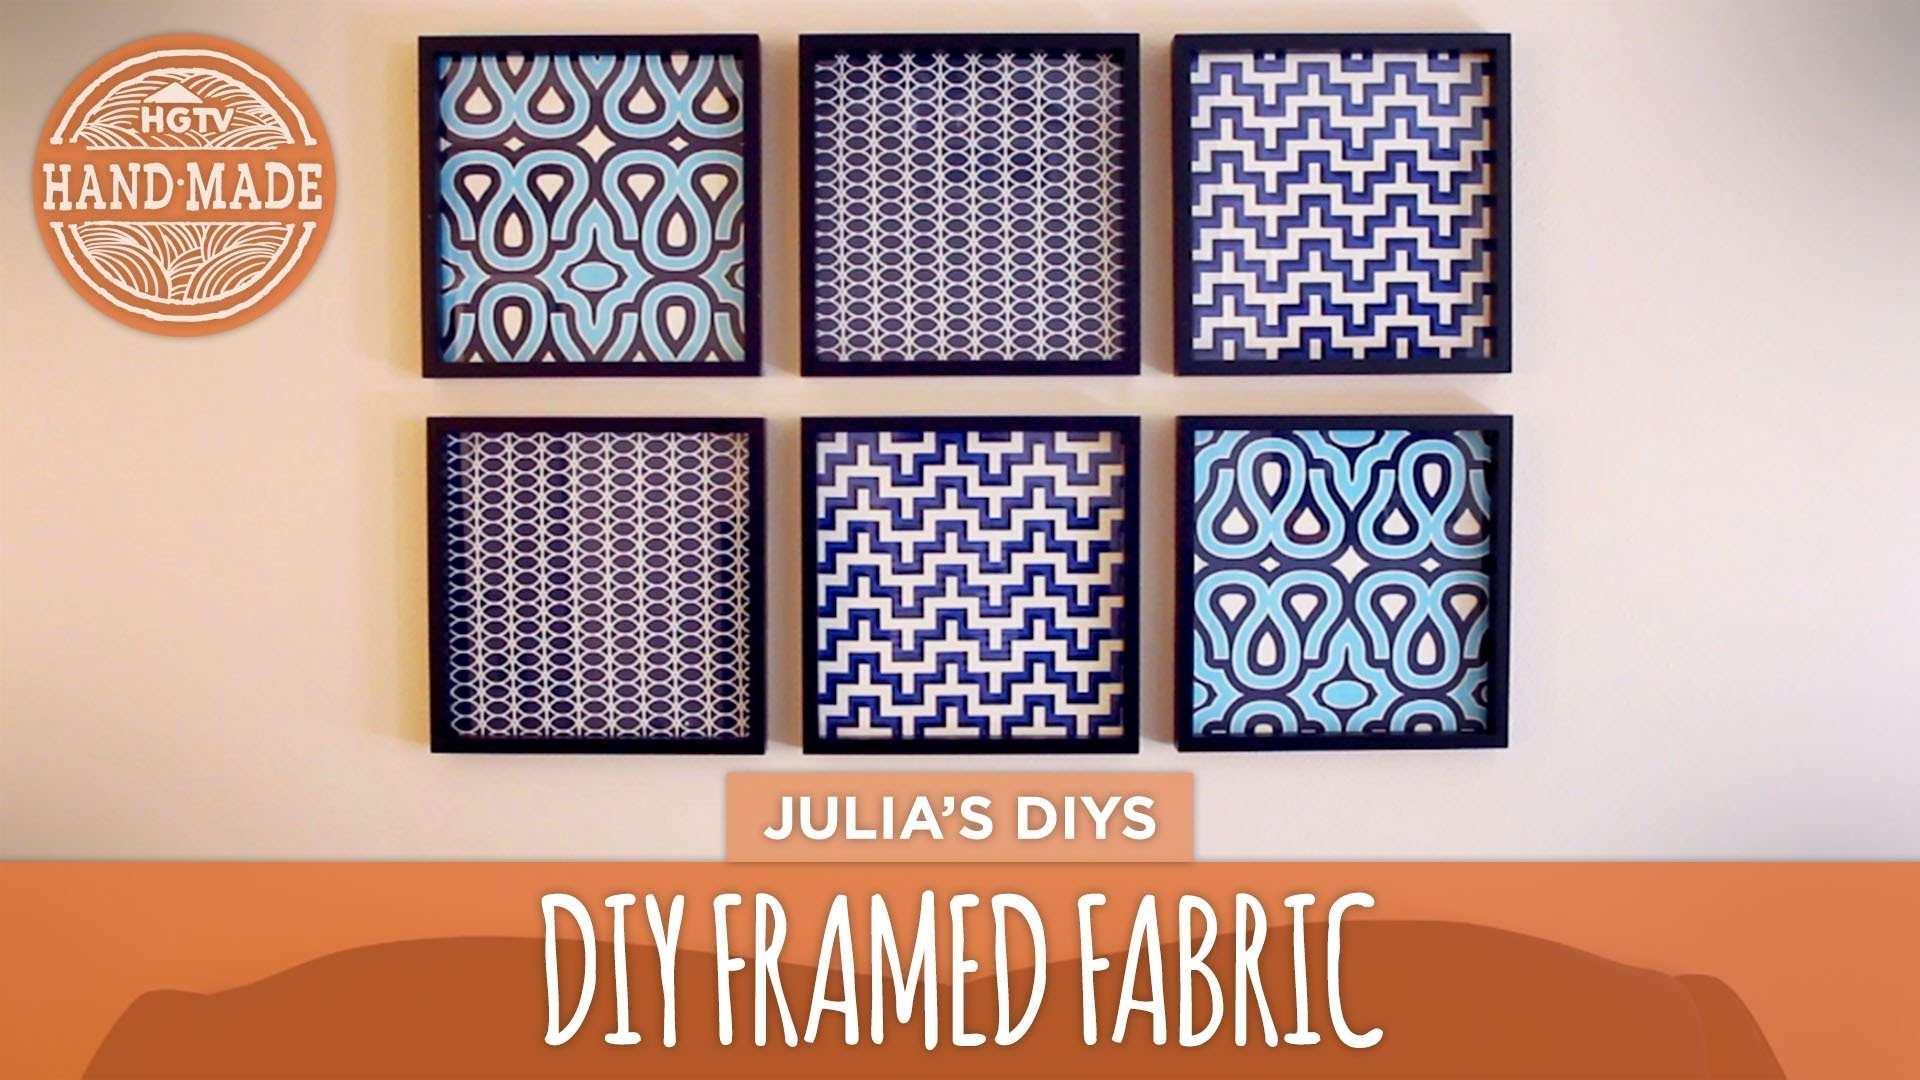 Diy Framed Fabric Gallery Wall – Hgtv Handmade – Youtube In Most Recent Homemade Wall Art With Fabric (View 12 of 15)